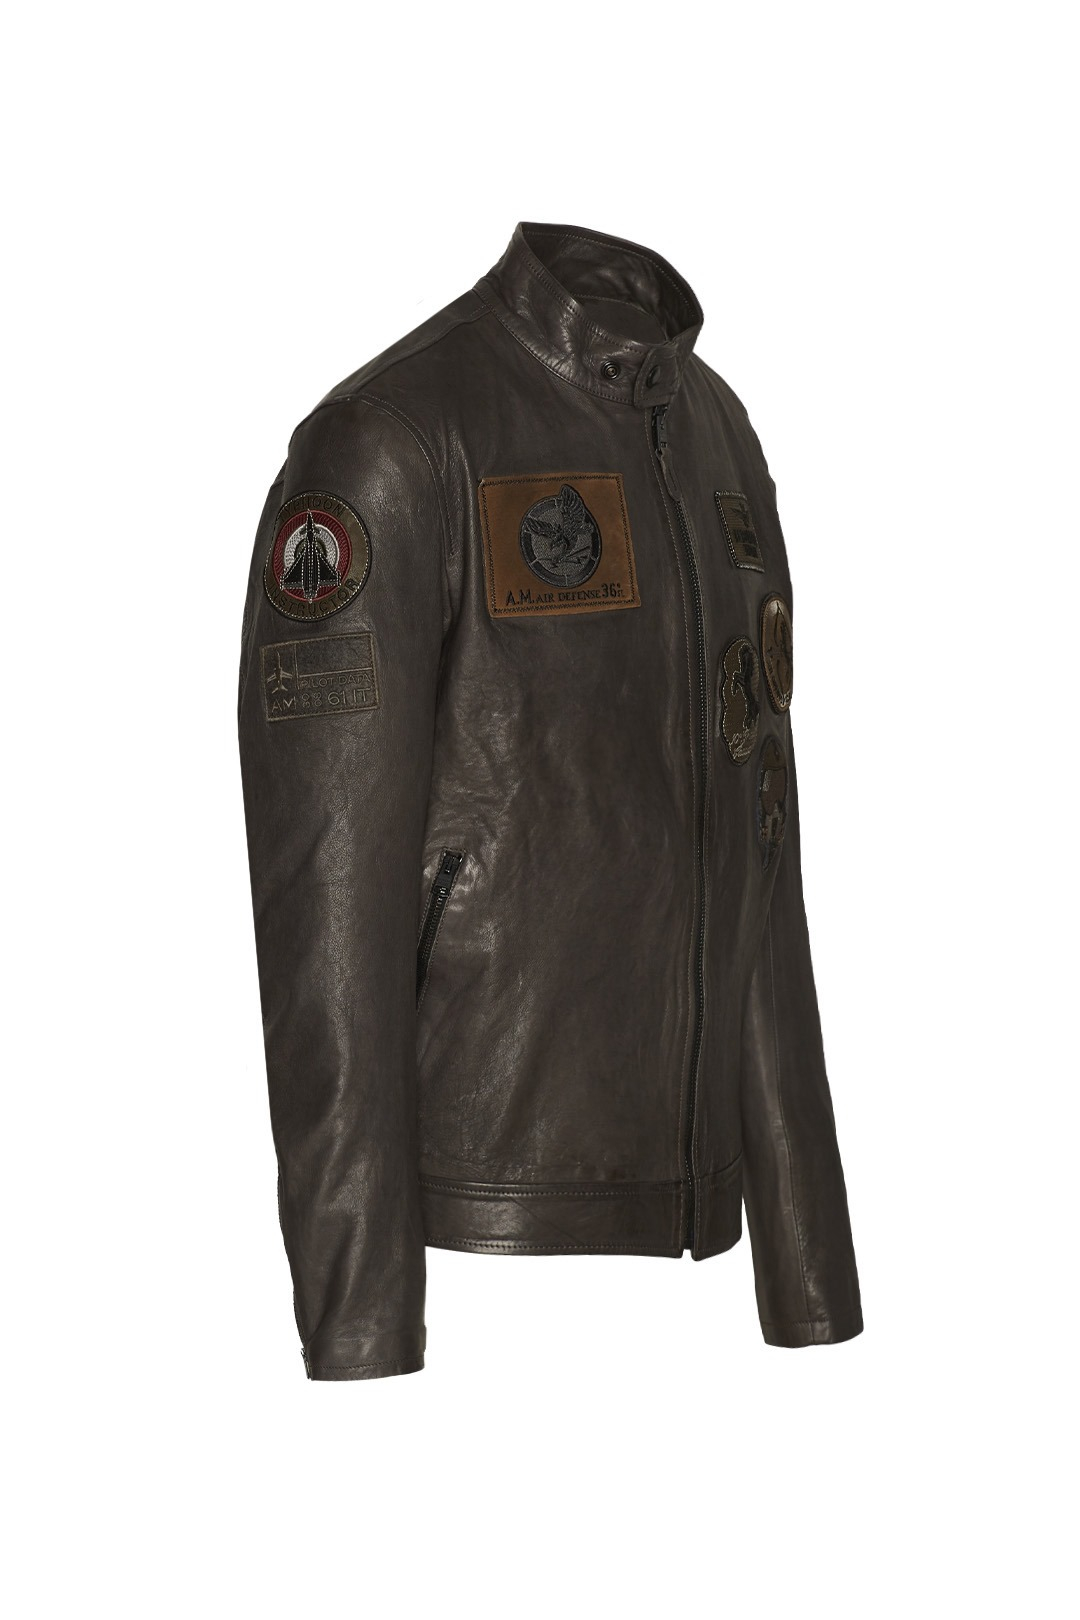 Leather Jacket with patches                      3